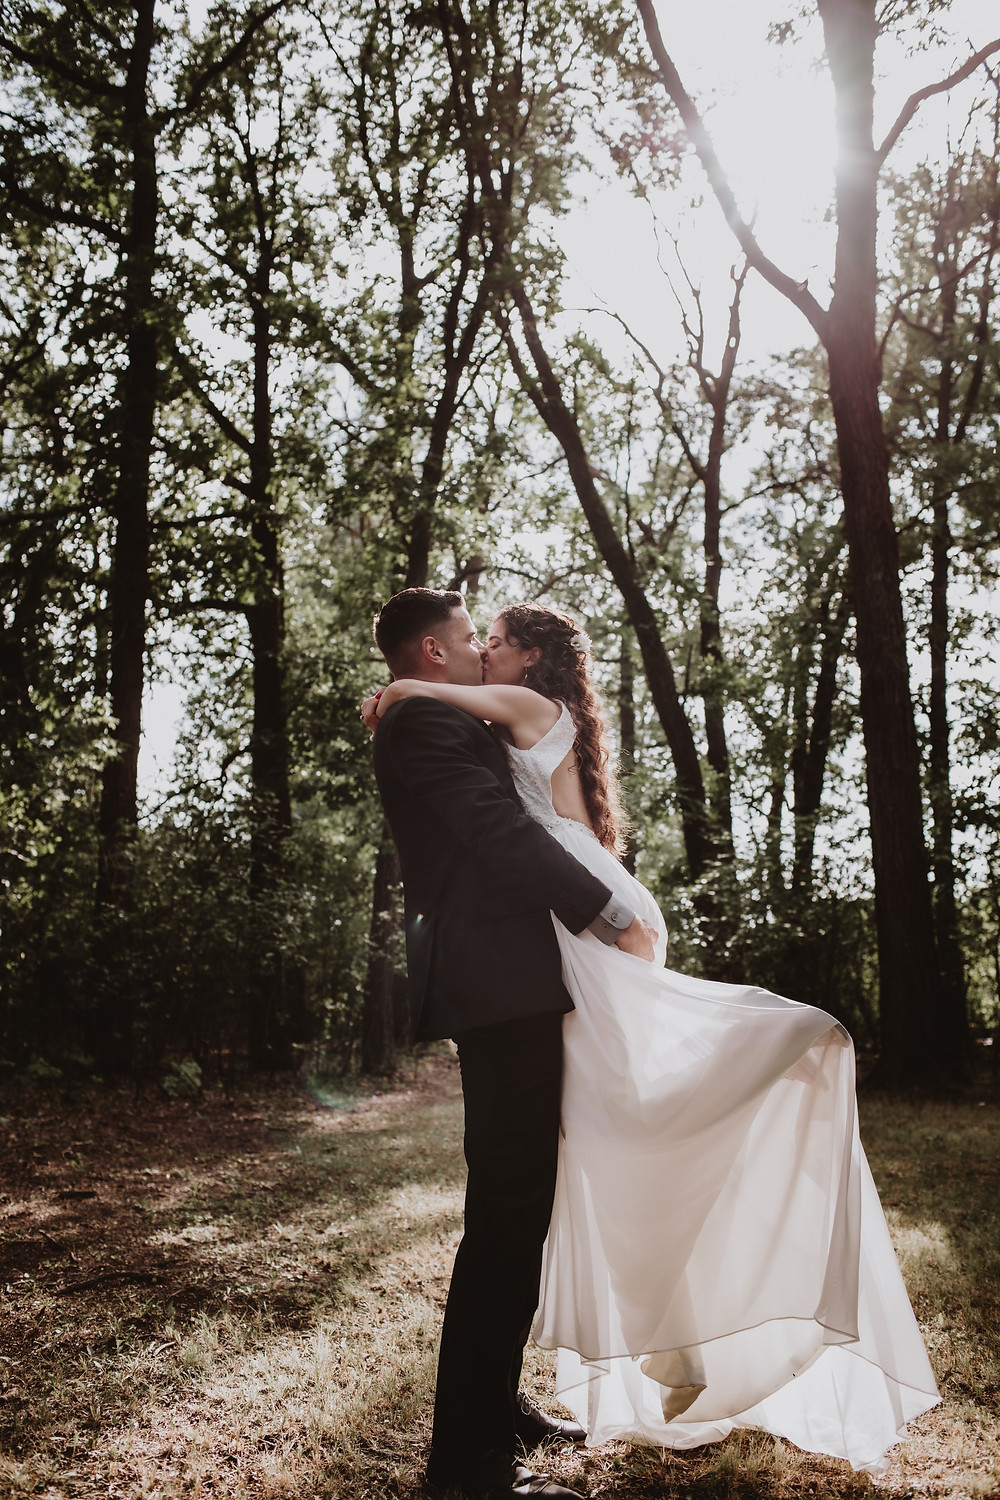 Groom lifts and kisses bride inthe forest, in Winnipeg, Manitoba.